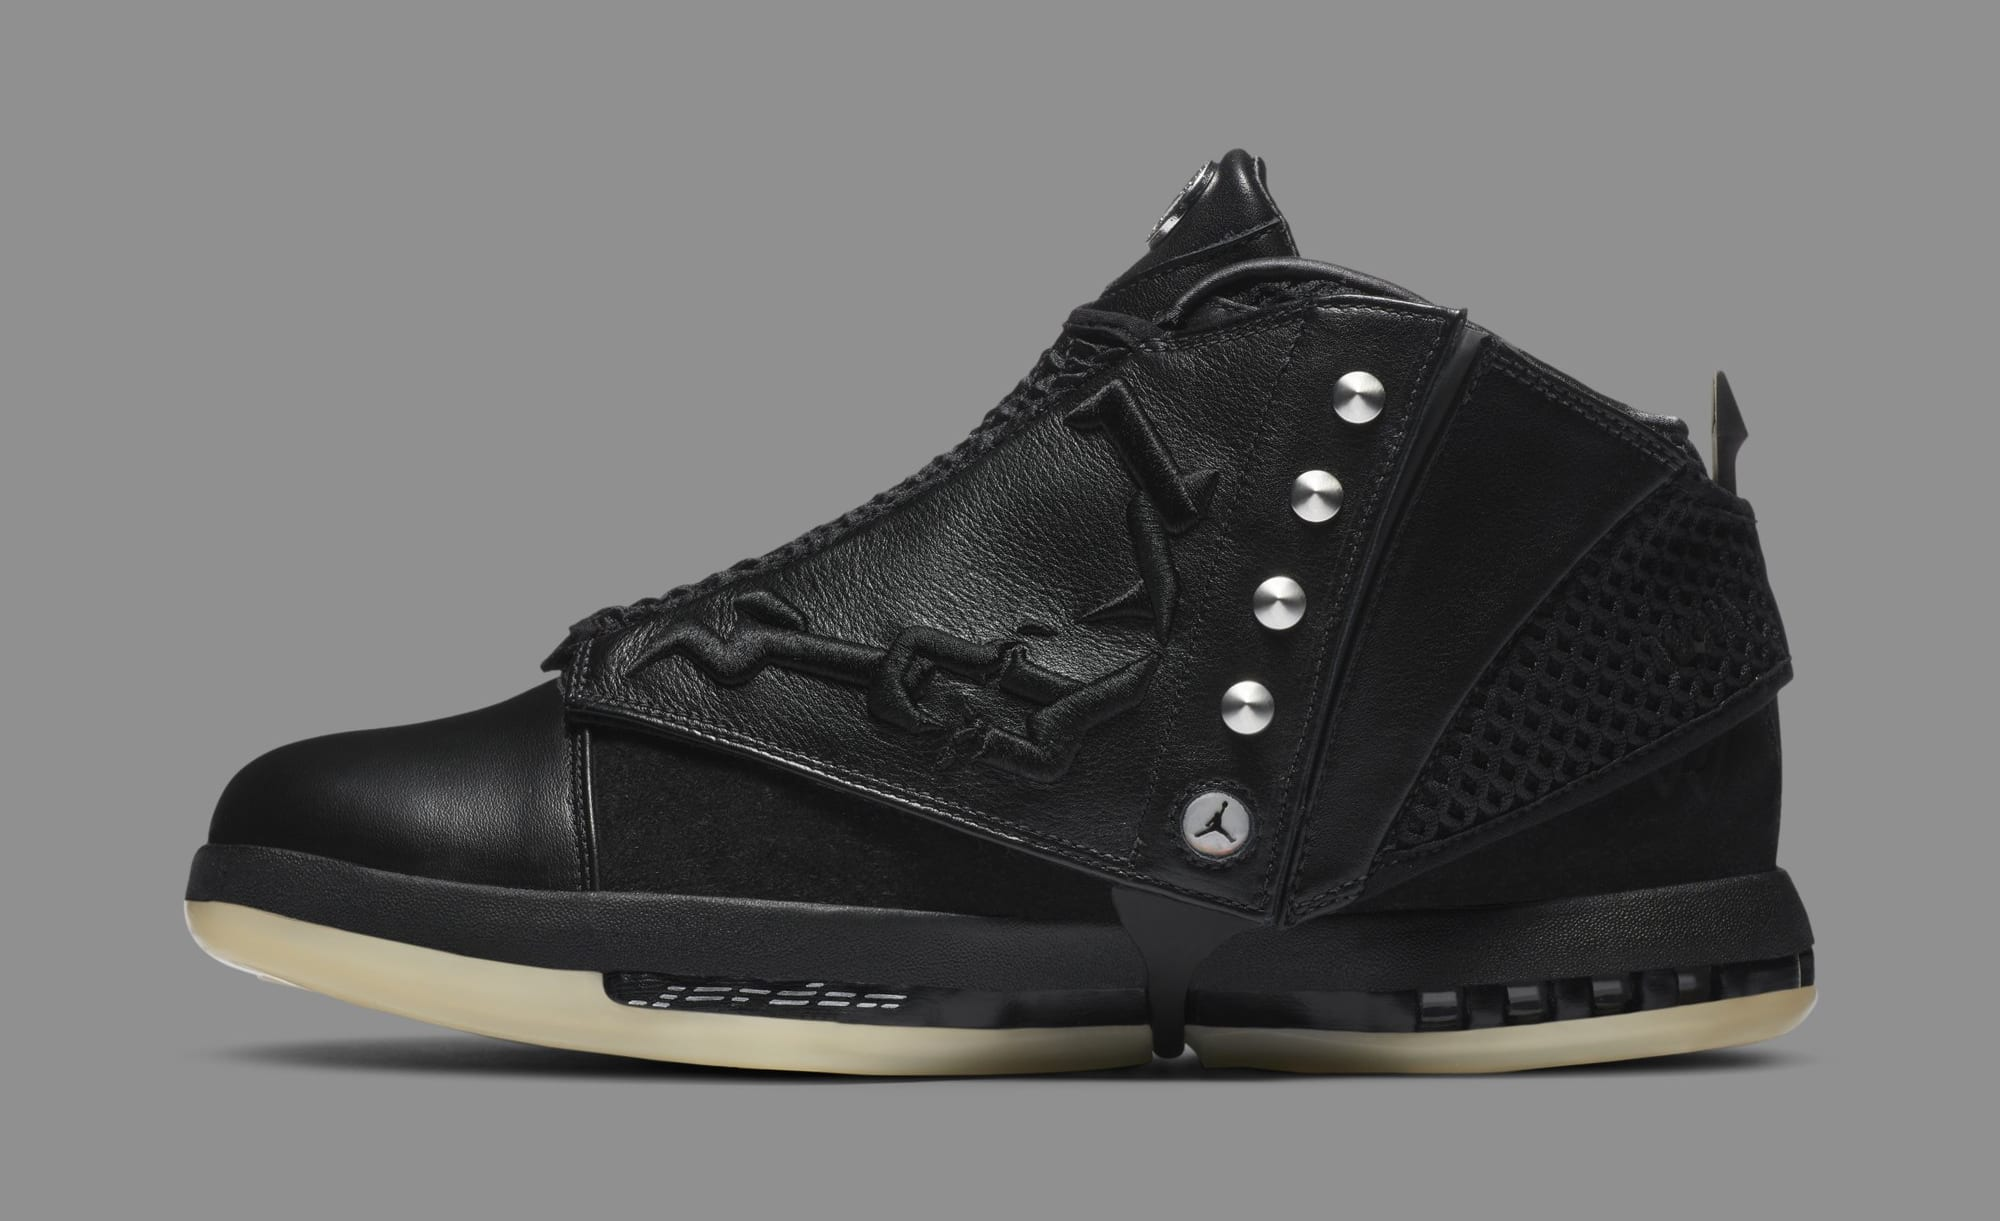 Russell Westbrook Air Jordan 16 Retro 'Why Not?' DA1323-900 Lateral